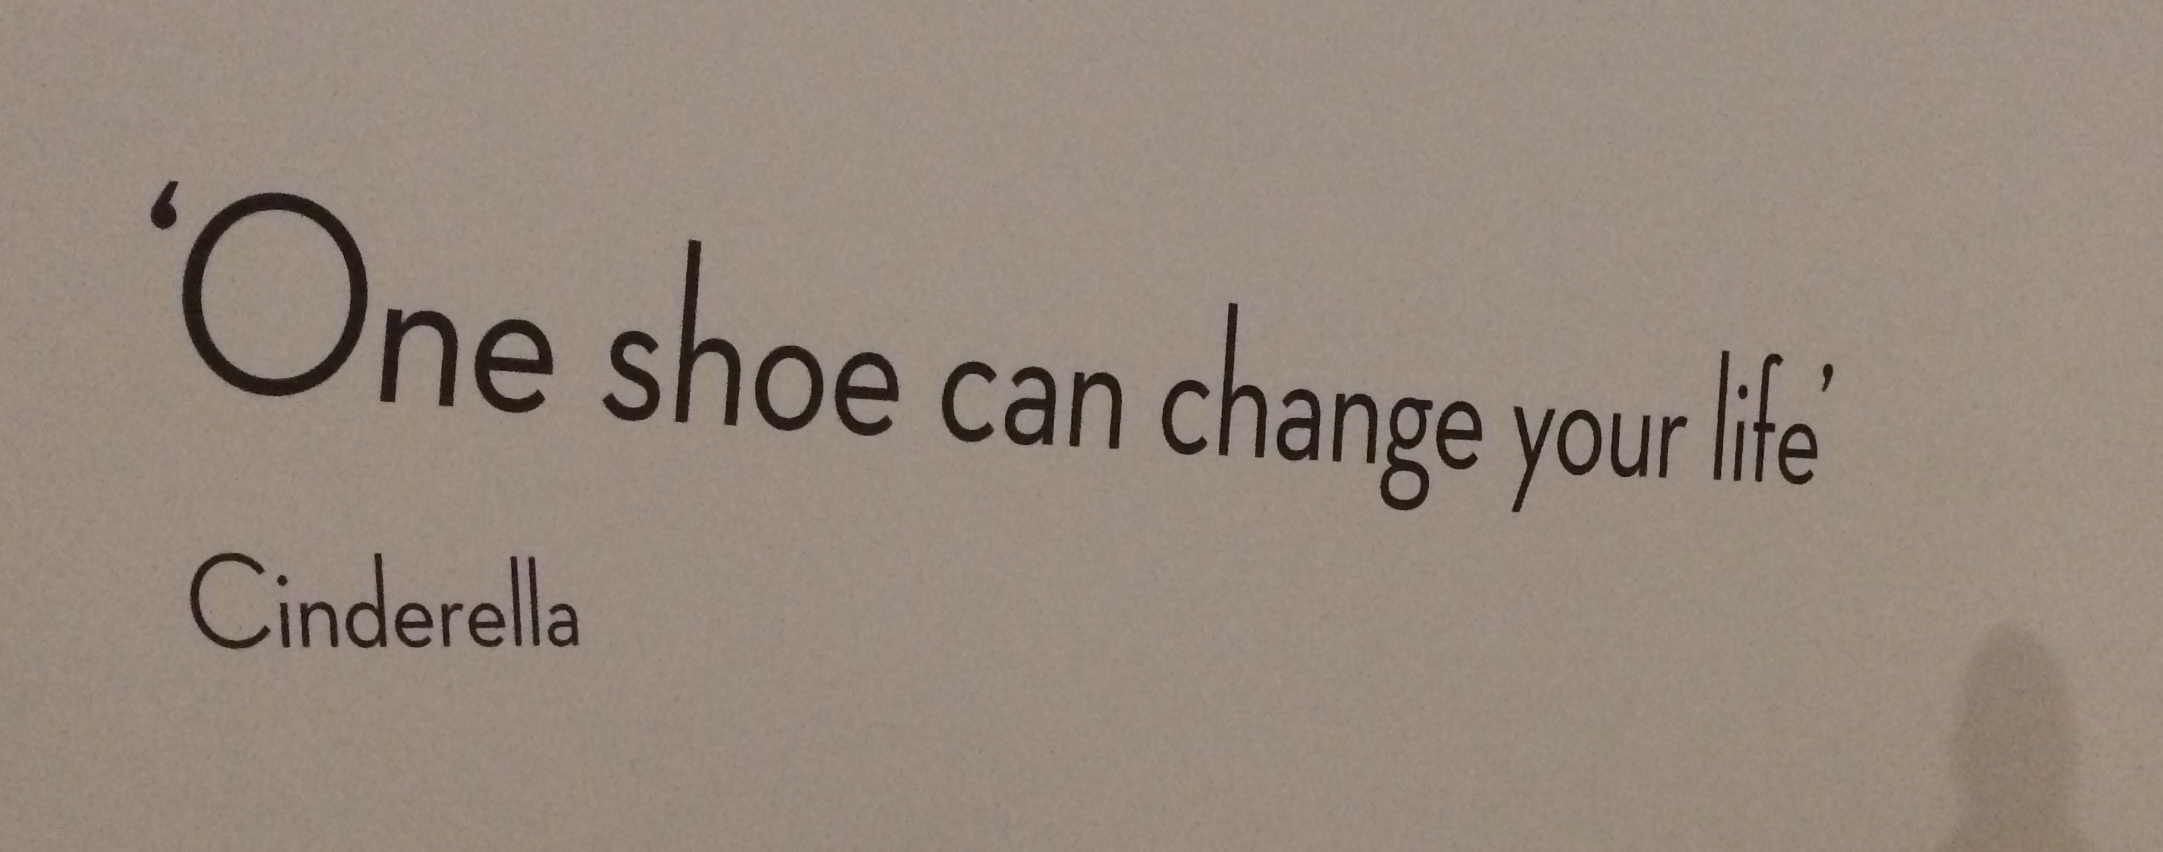 V&A shoes